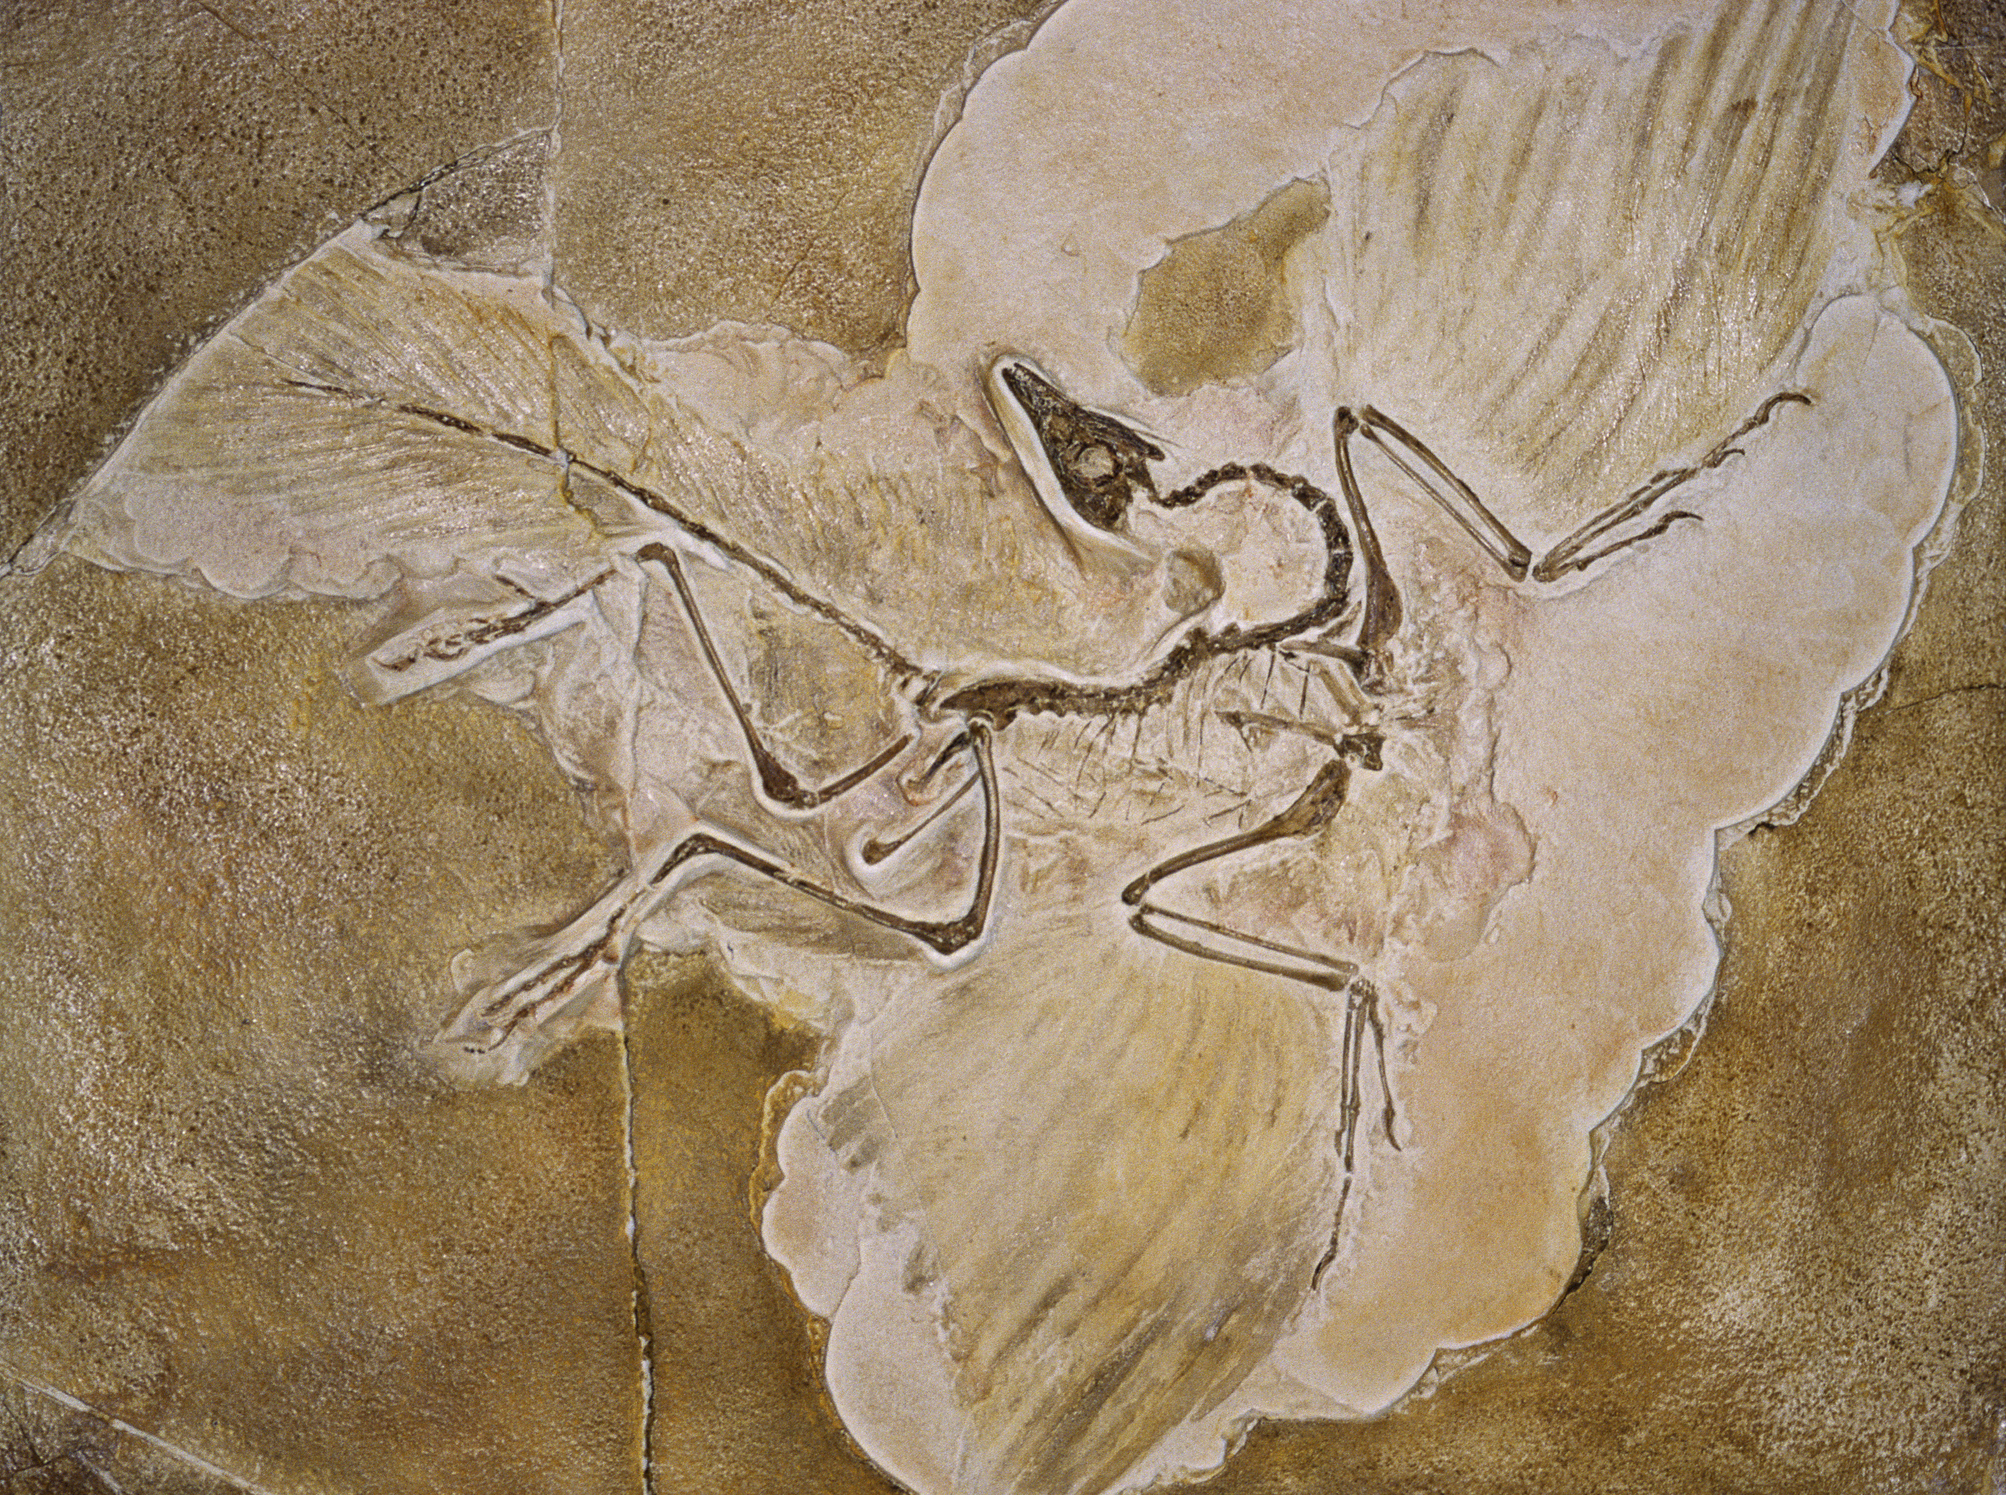 Archaeopteryx Lithographica Fossil